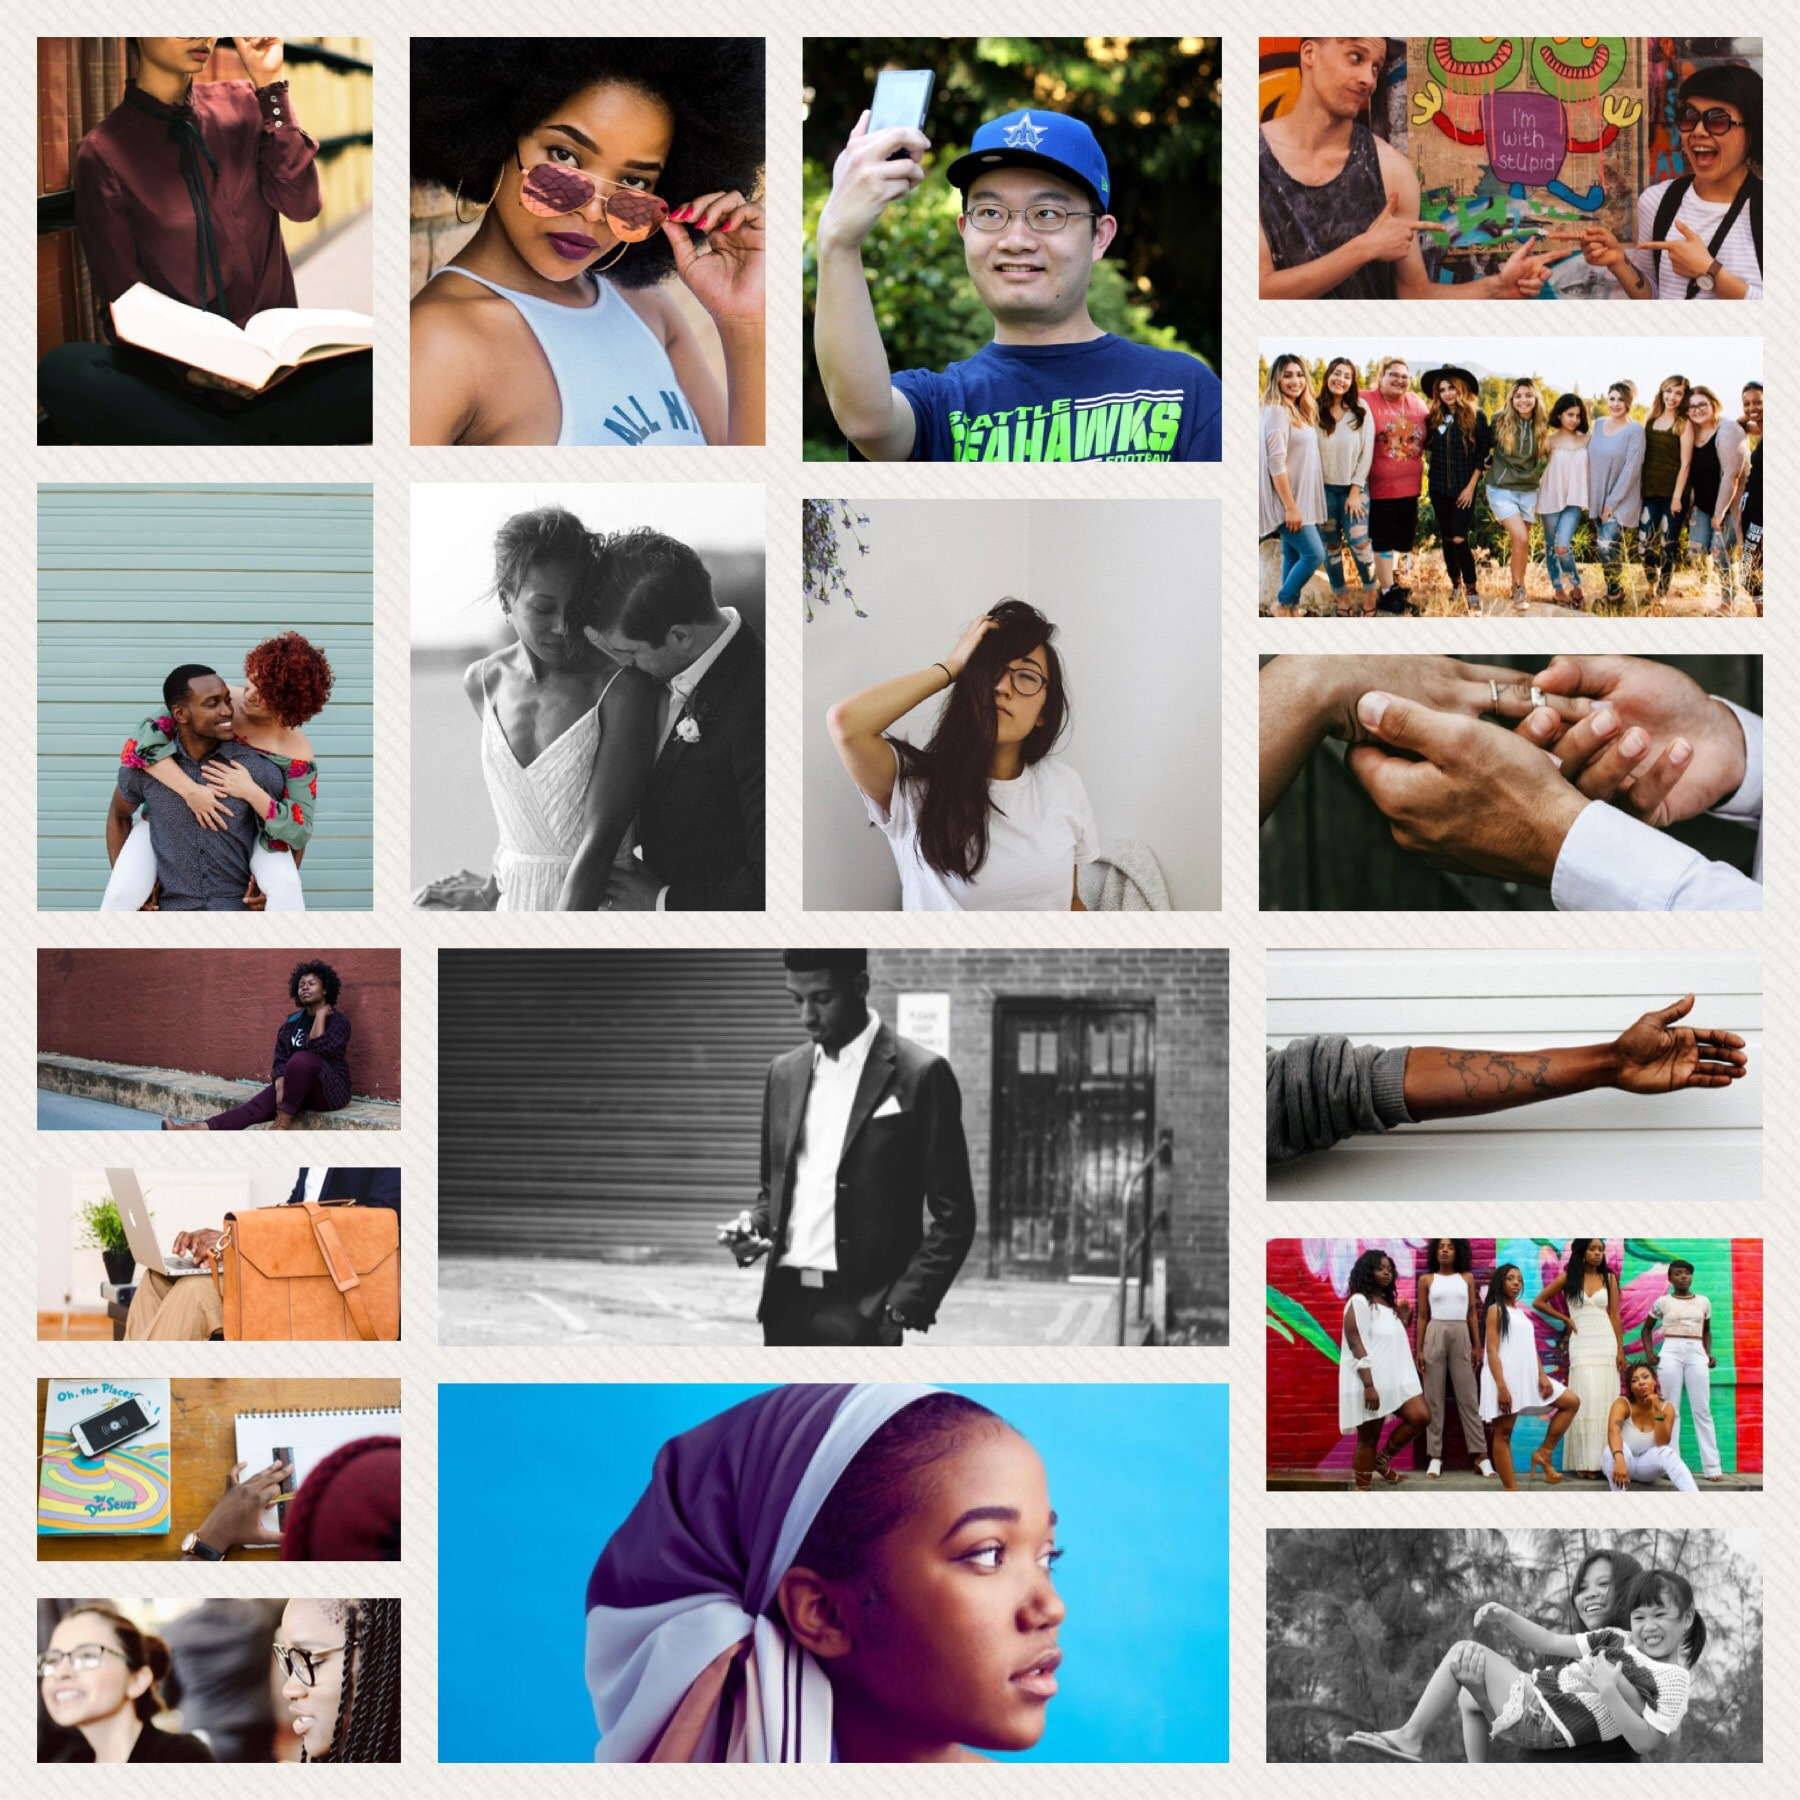 DEAL: Get 400+ Diverse Stock Photos for Just $19.99 Before Price Jumps